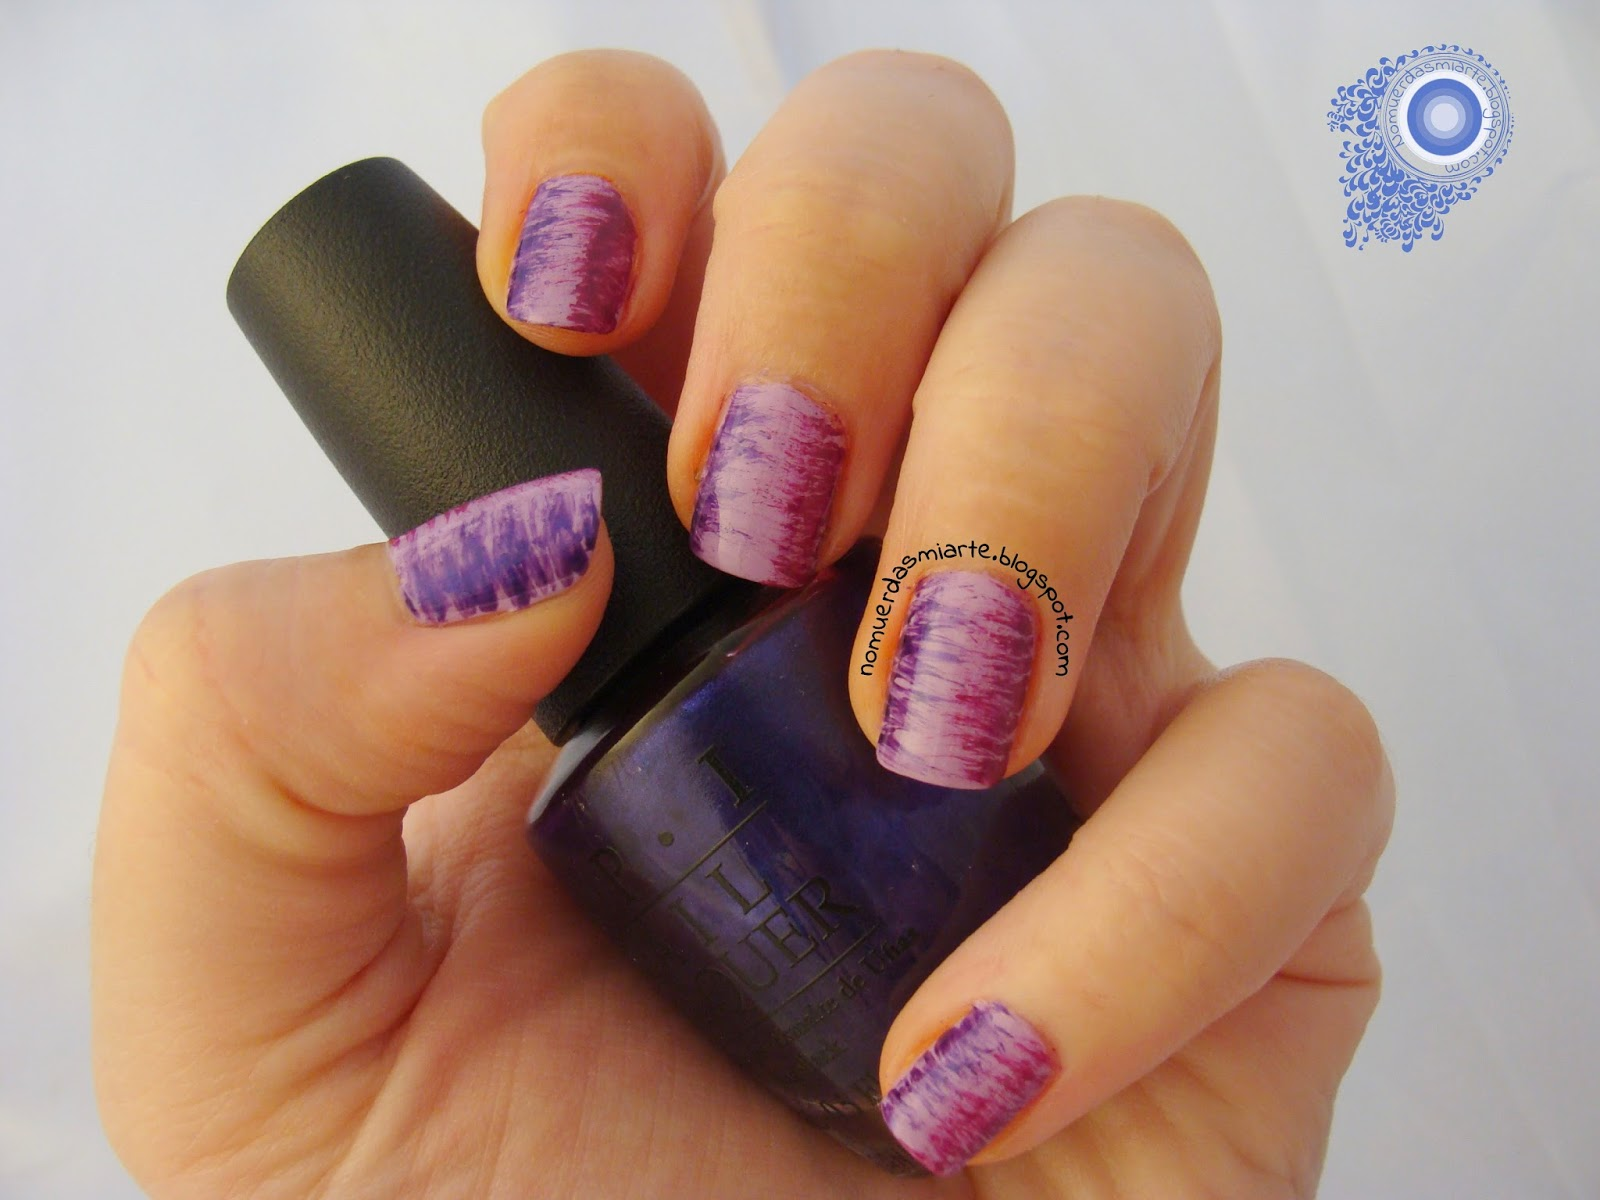 Fan brush manicure